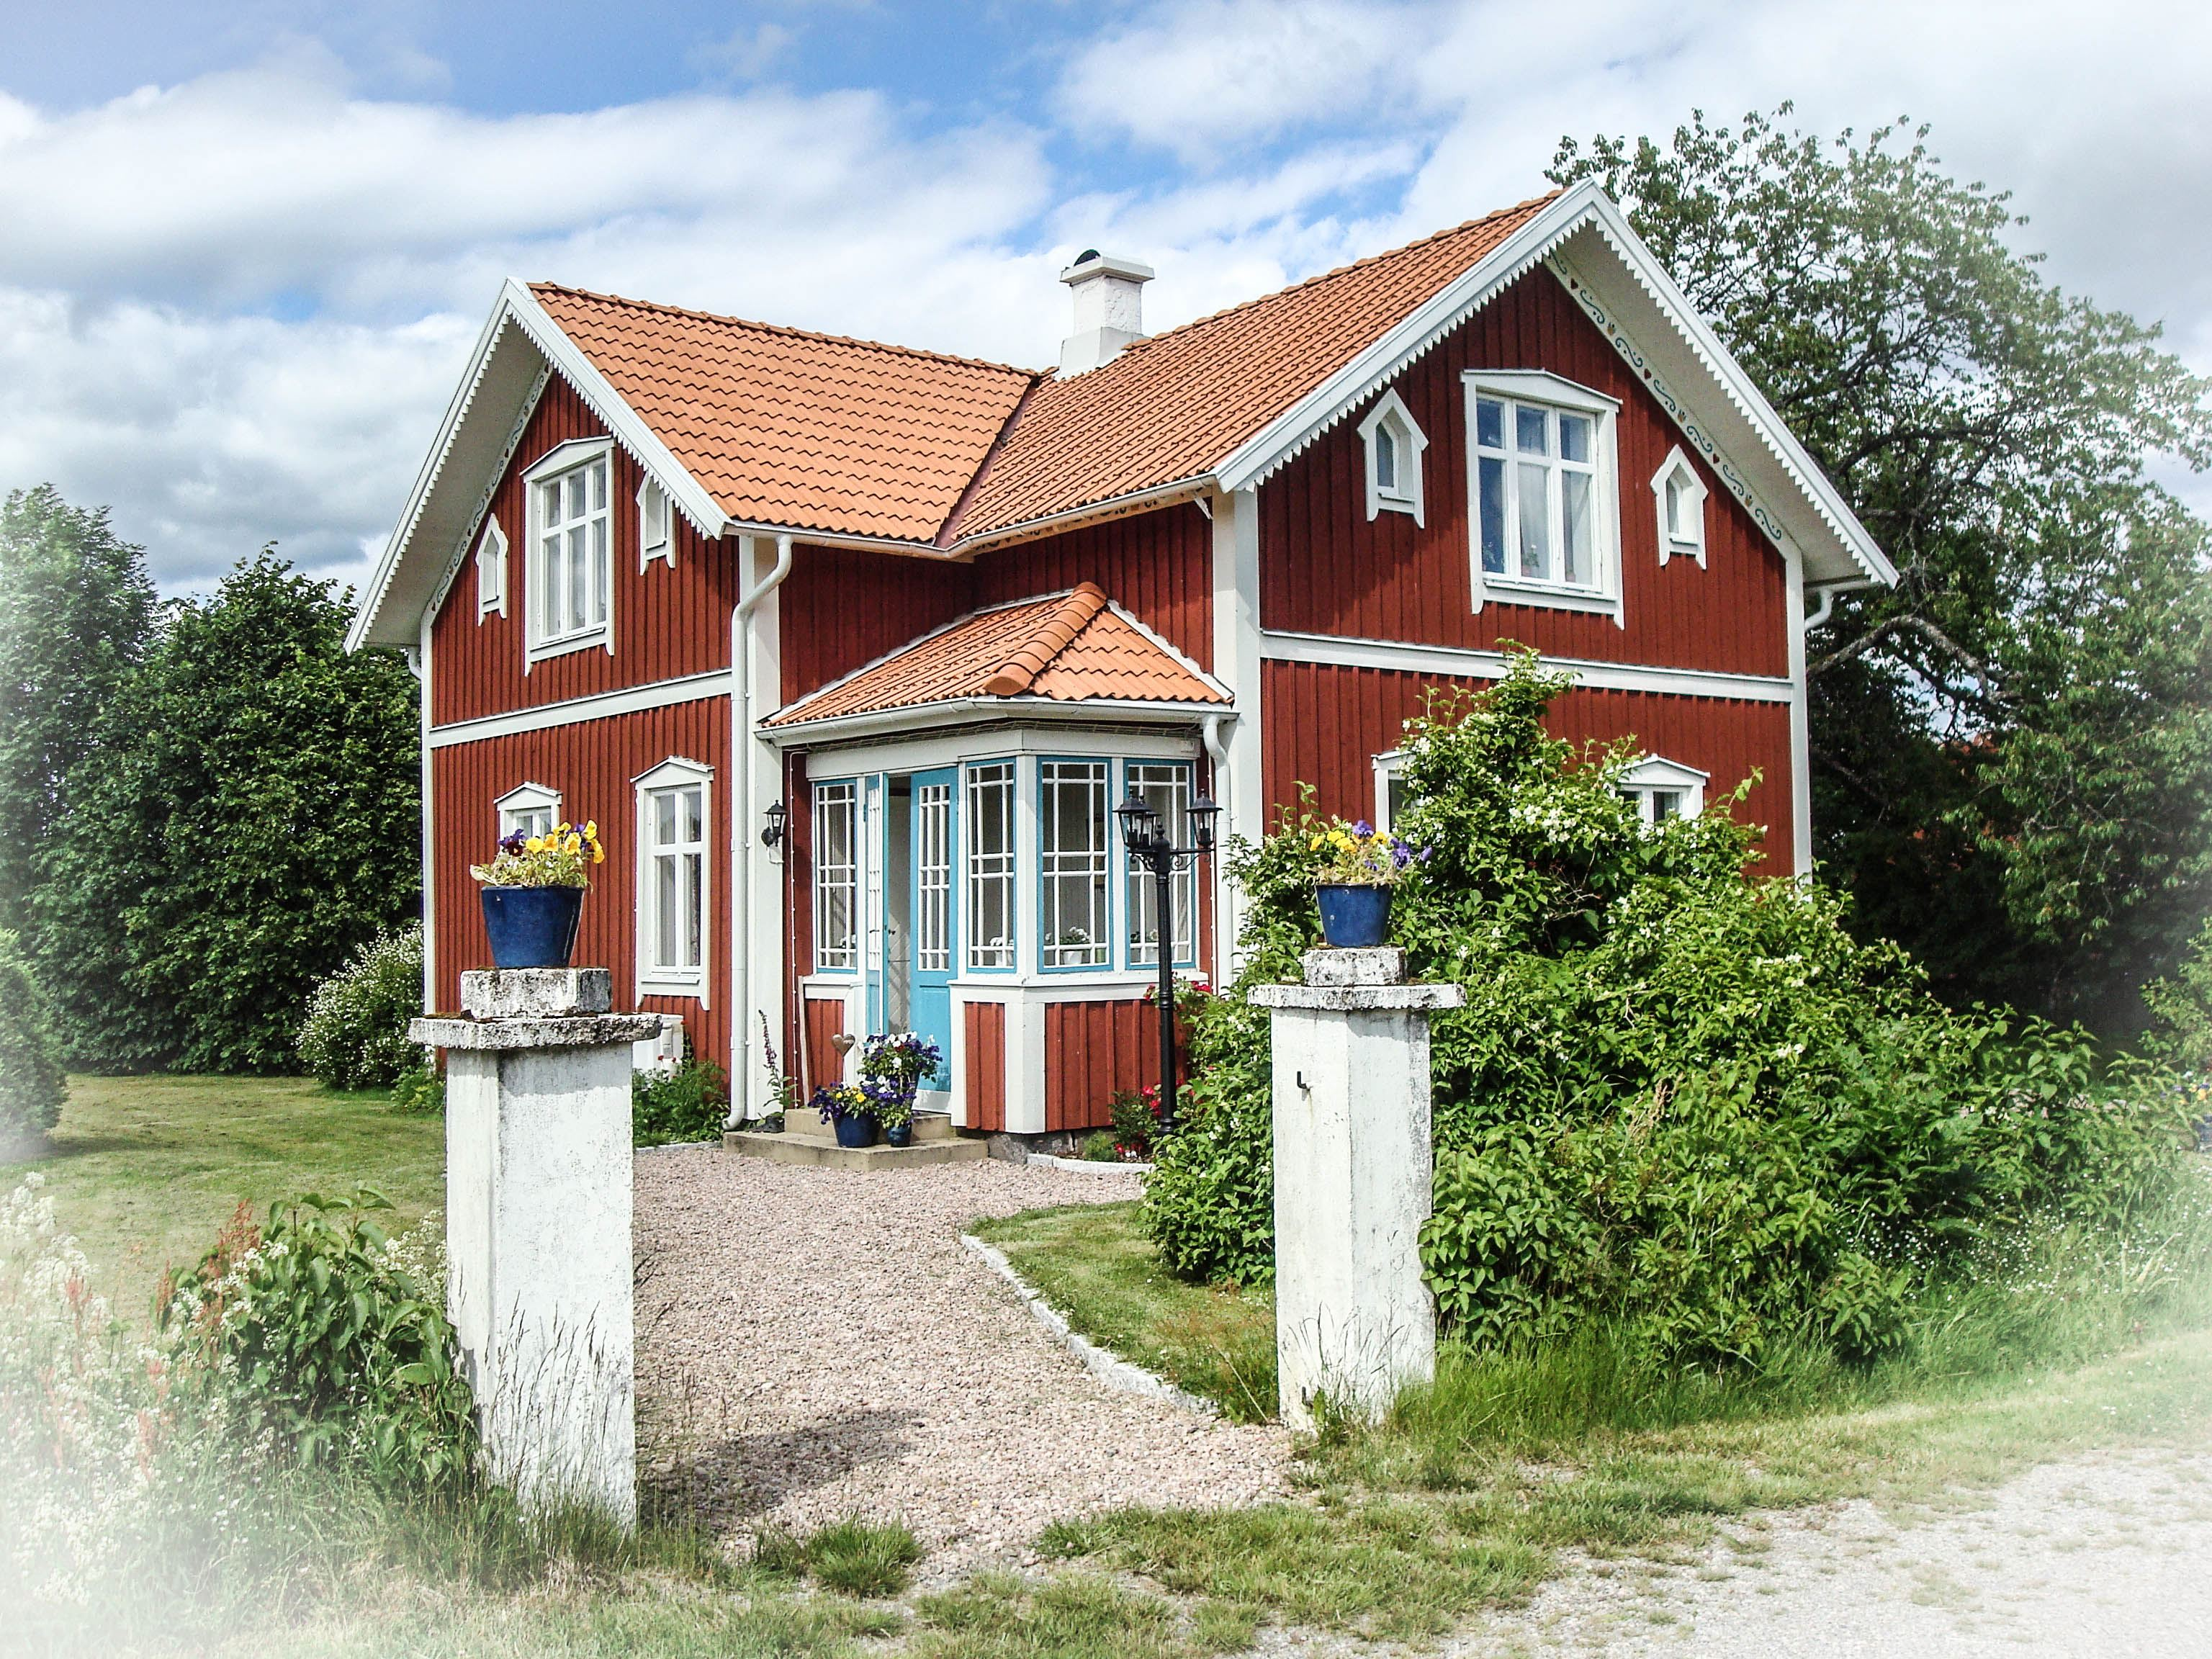 Classic Red Wooden House in Löbbo